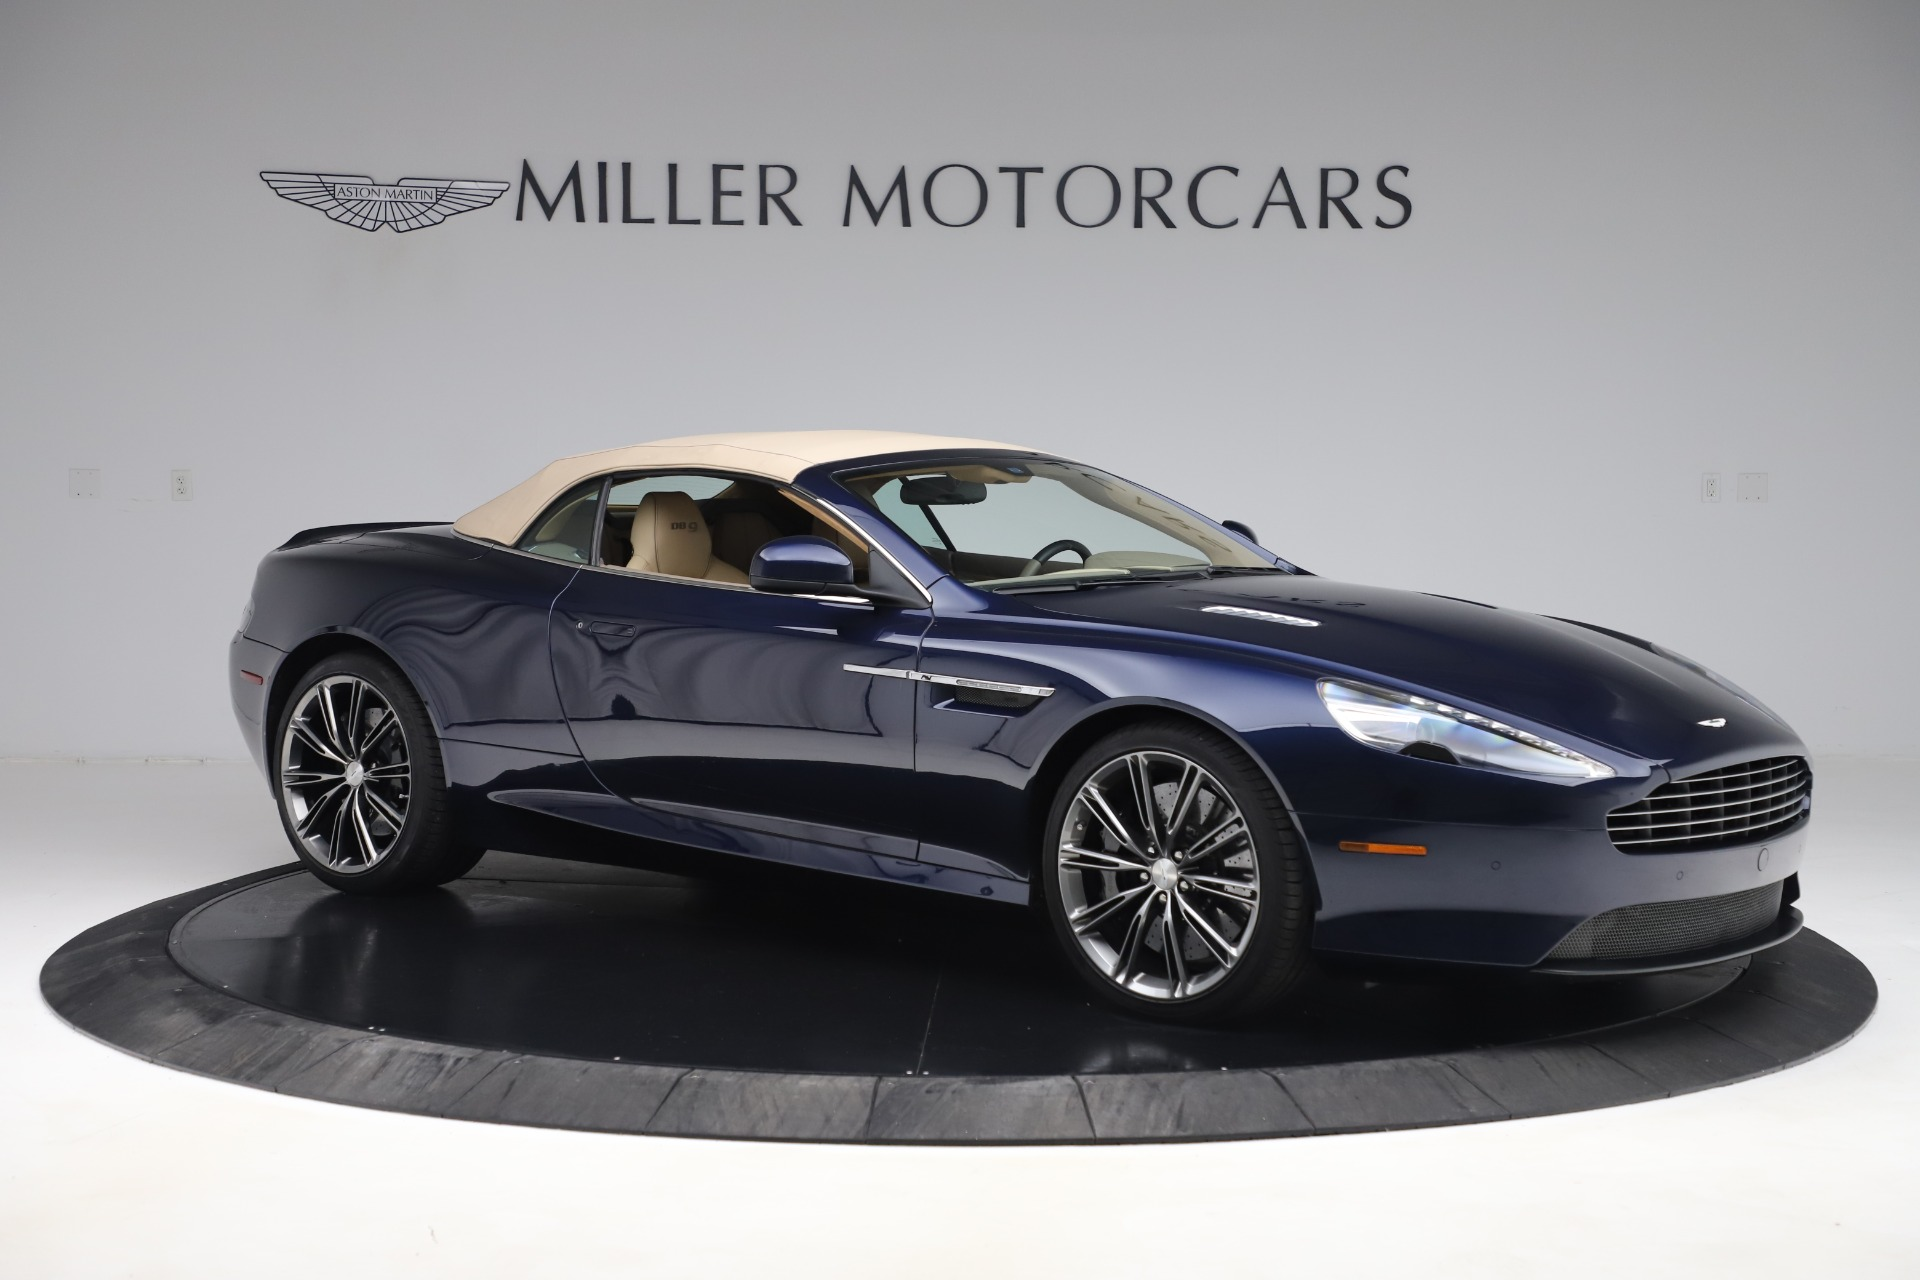 Used 2014 Aston Martin DB9 Volante For Sale In Westport, CT 3591_p18